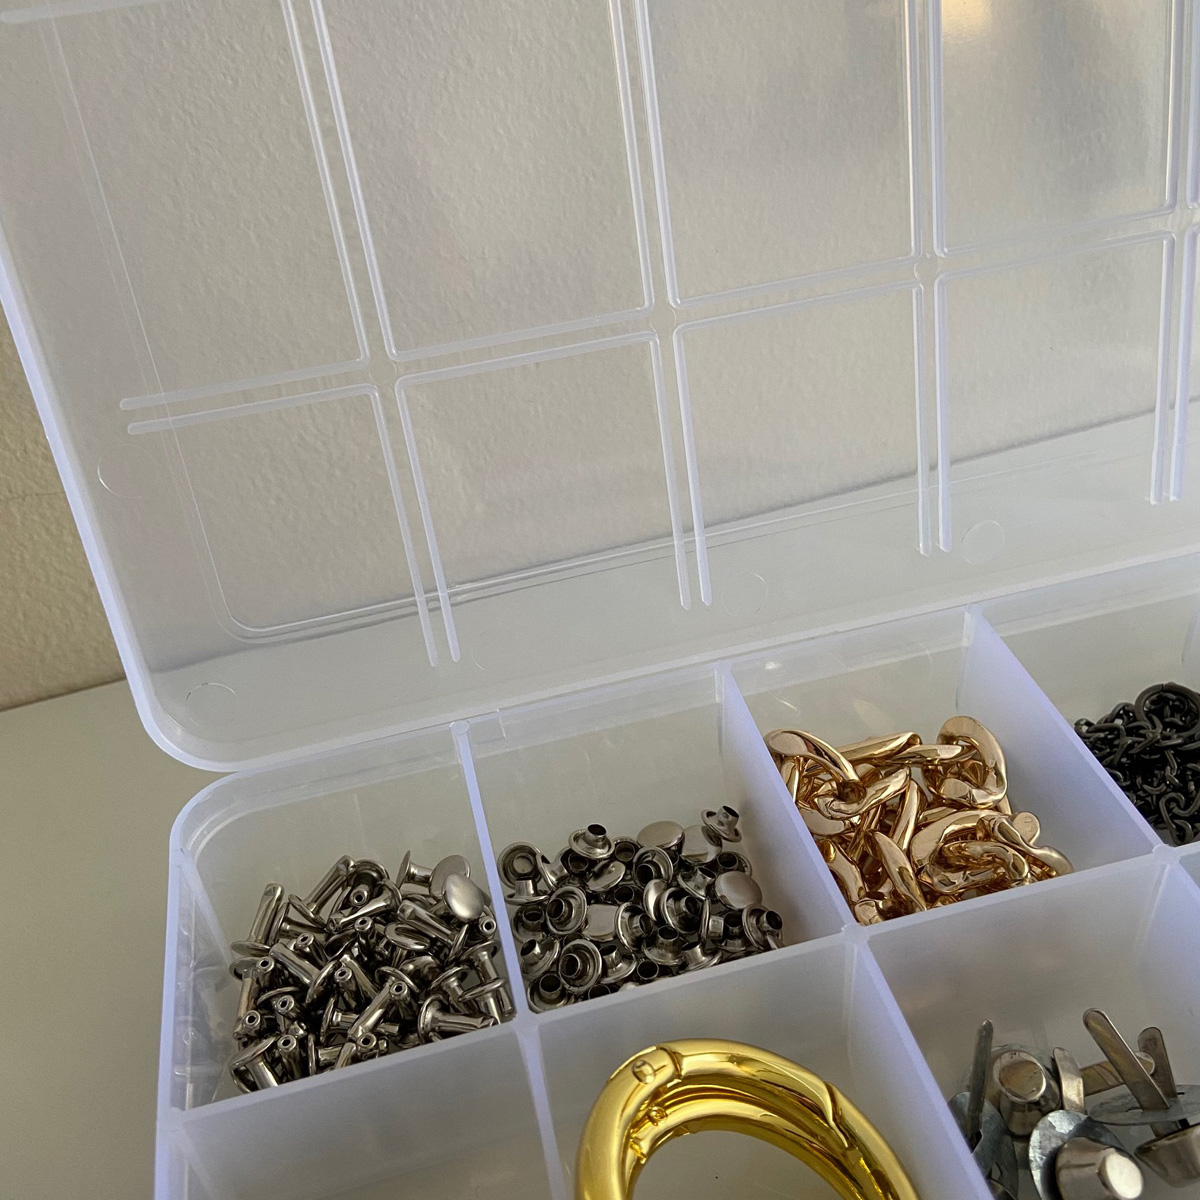 Organization tips: clear plastic storage for small supplies